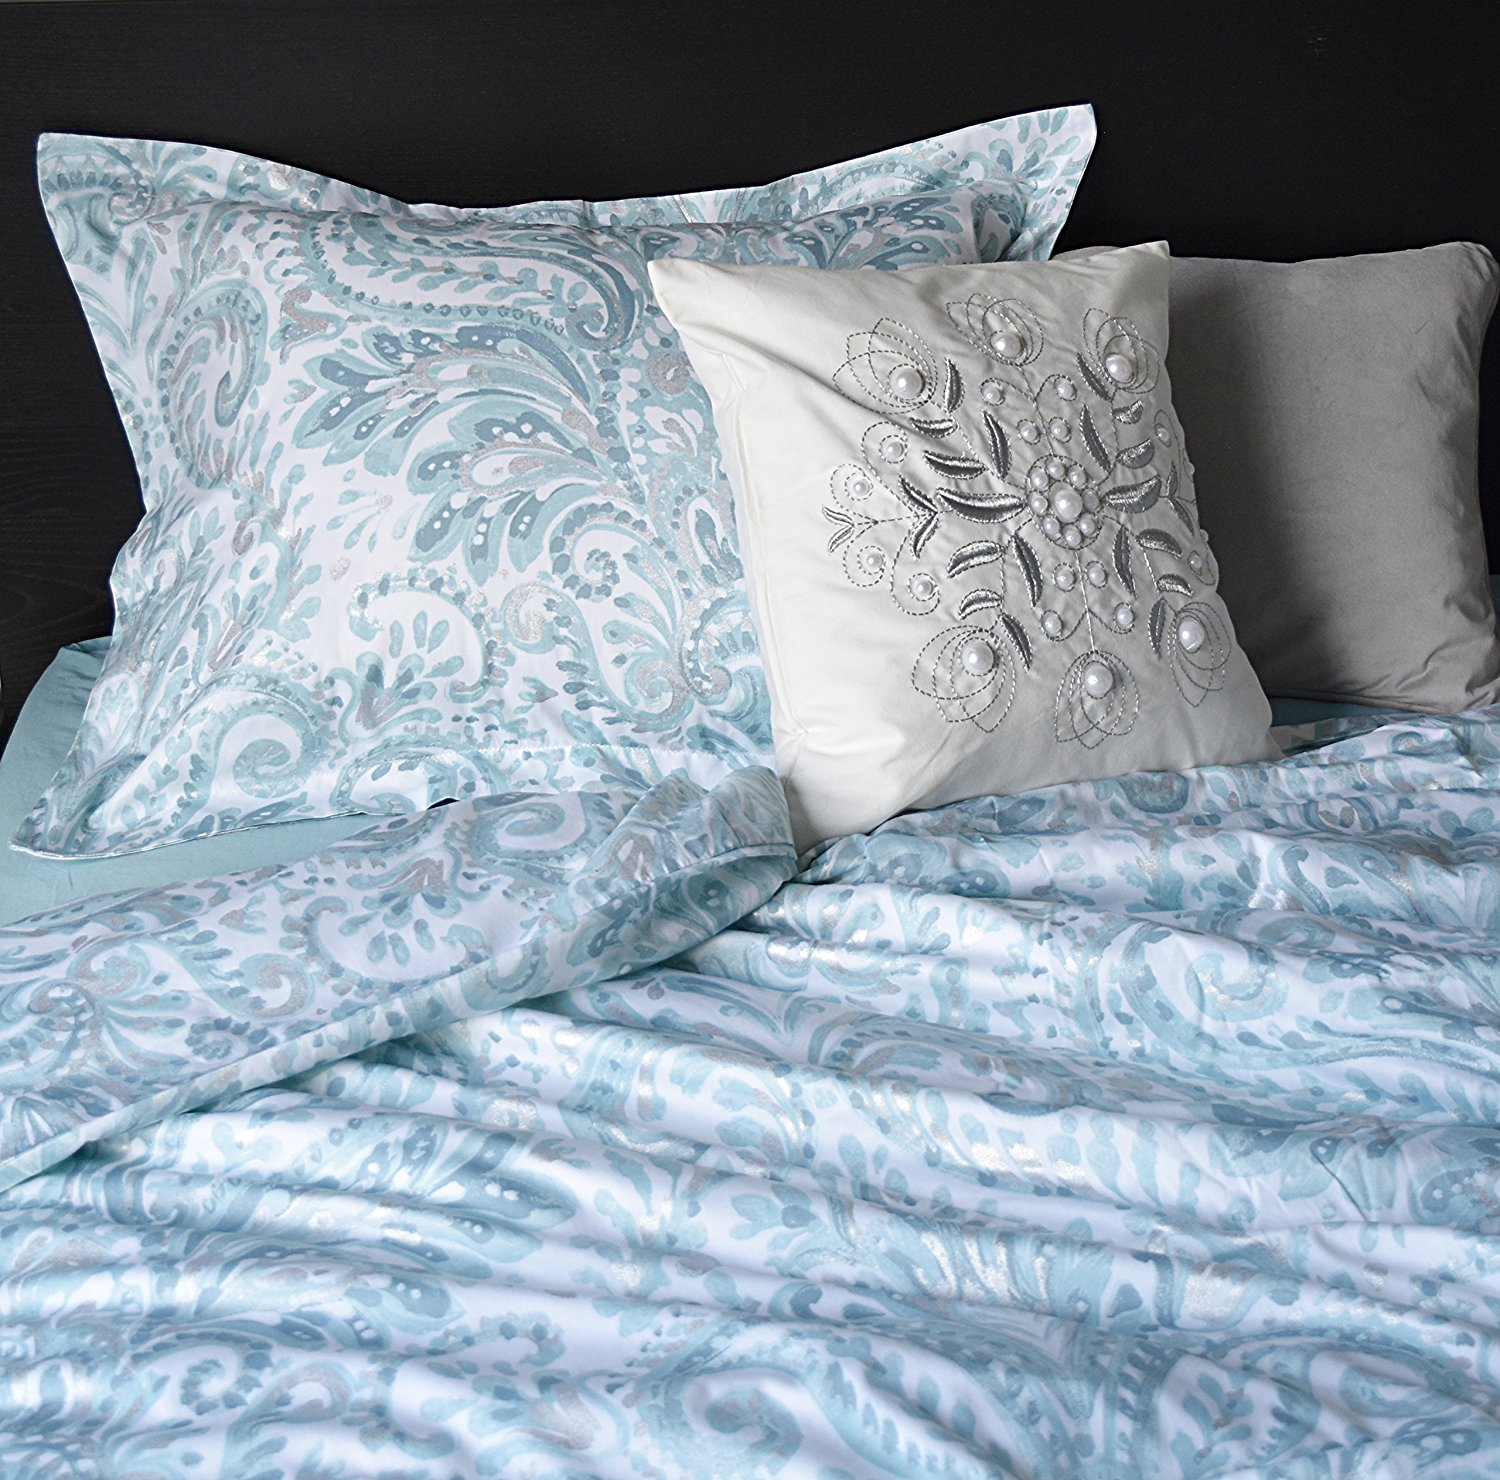 Tahari Home Turquoise Pascal Aquarelle Paisley 3pc Duvet Cover Set Moroccan Medallion Teal Aqua Grey Silver Boho Chic Bothe Style Bohemian 300TC (Queen)